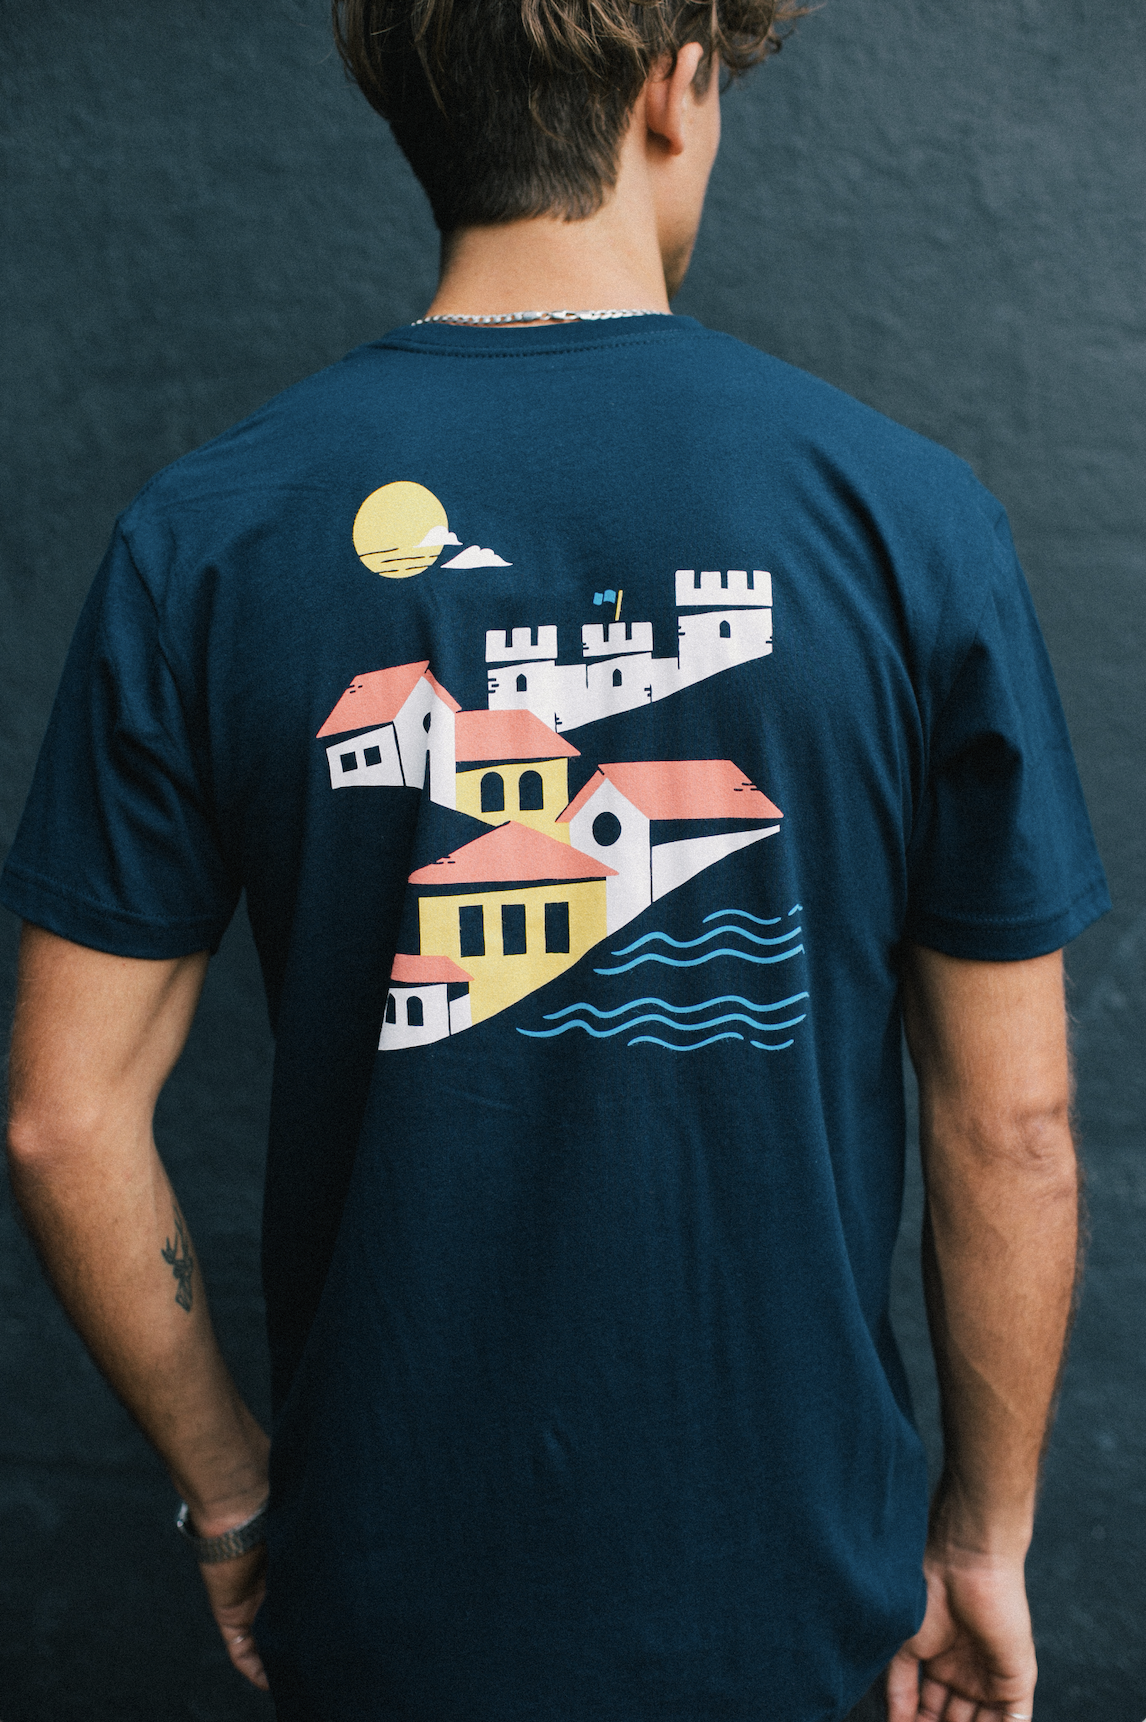 The back of a custom printed shirt with a beautiful colored seaside building.